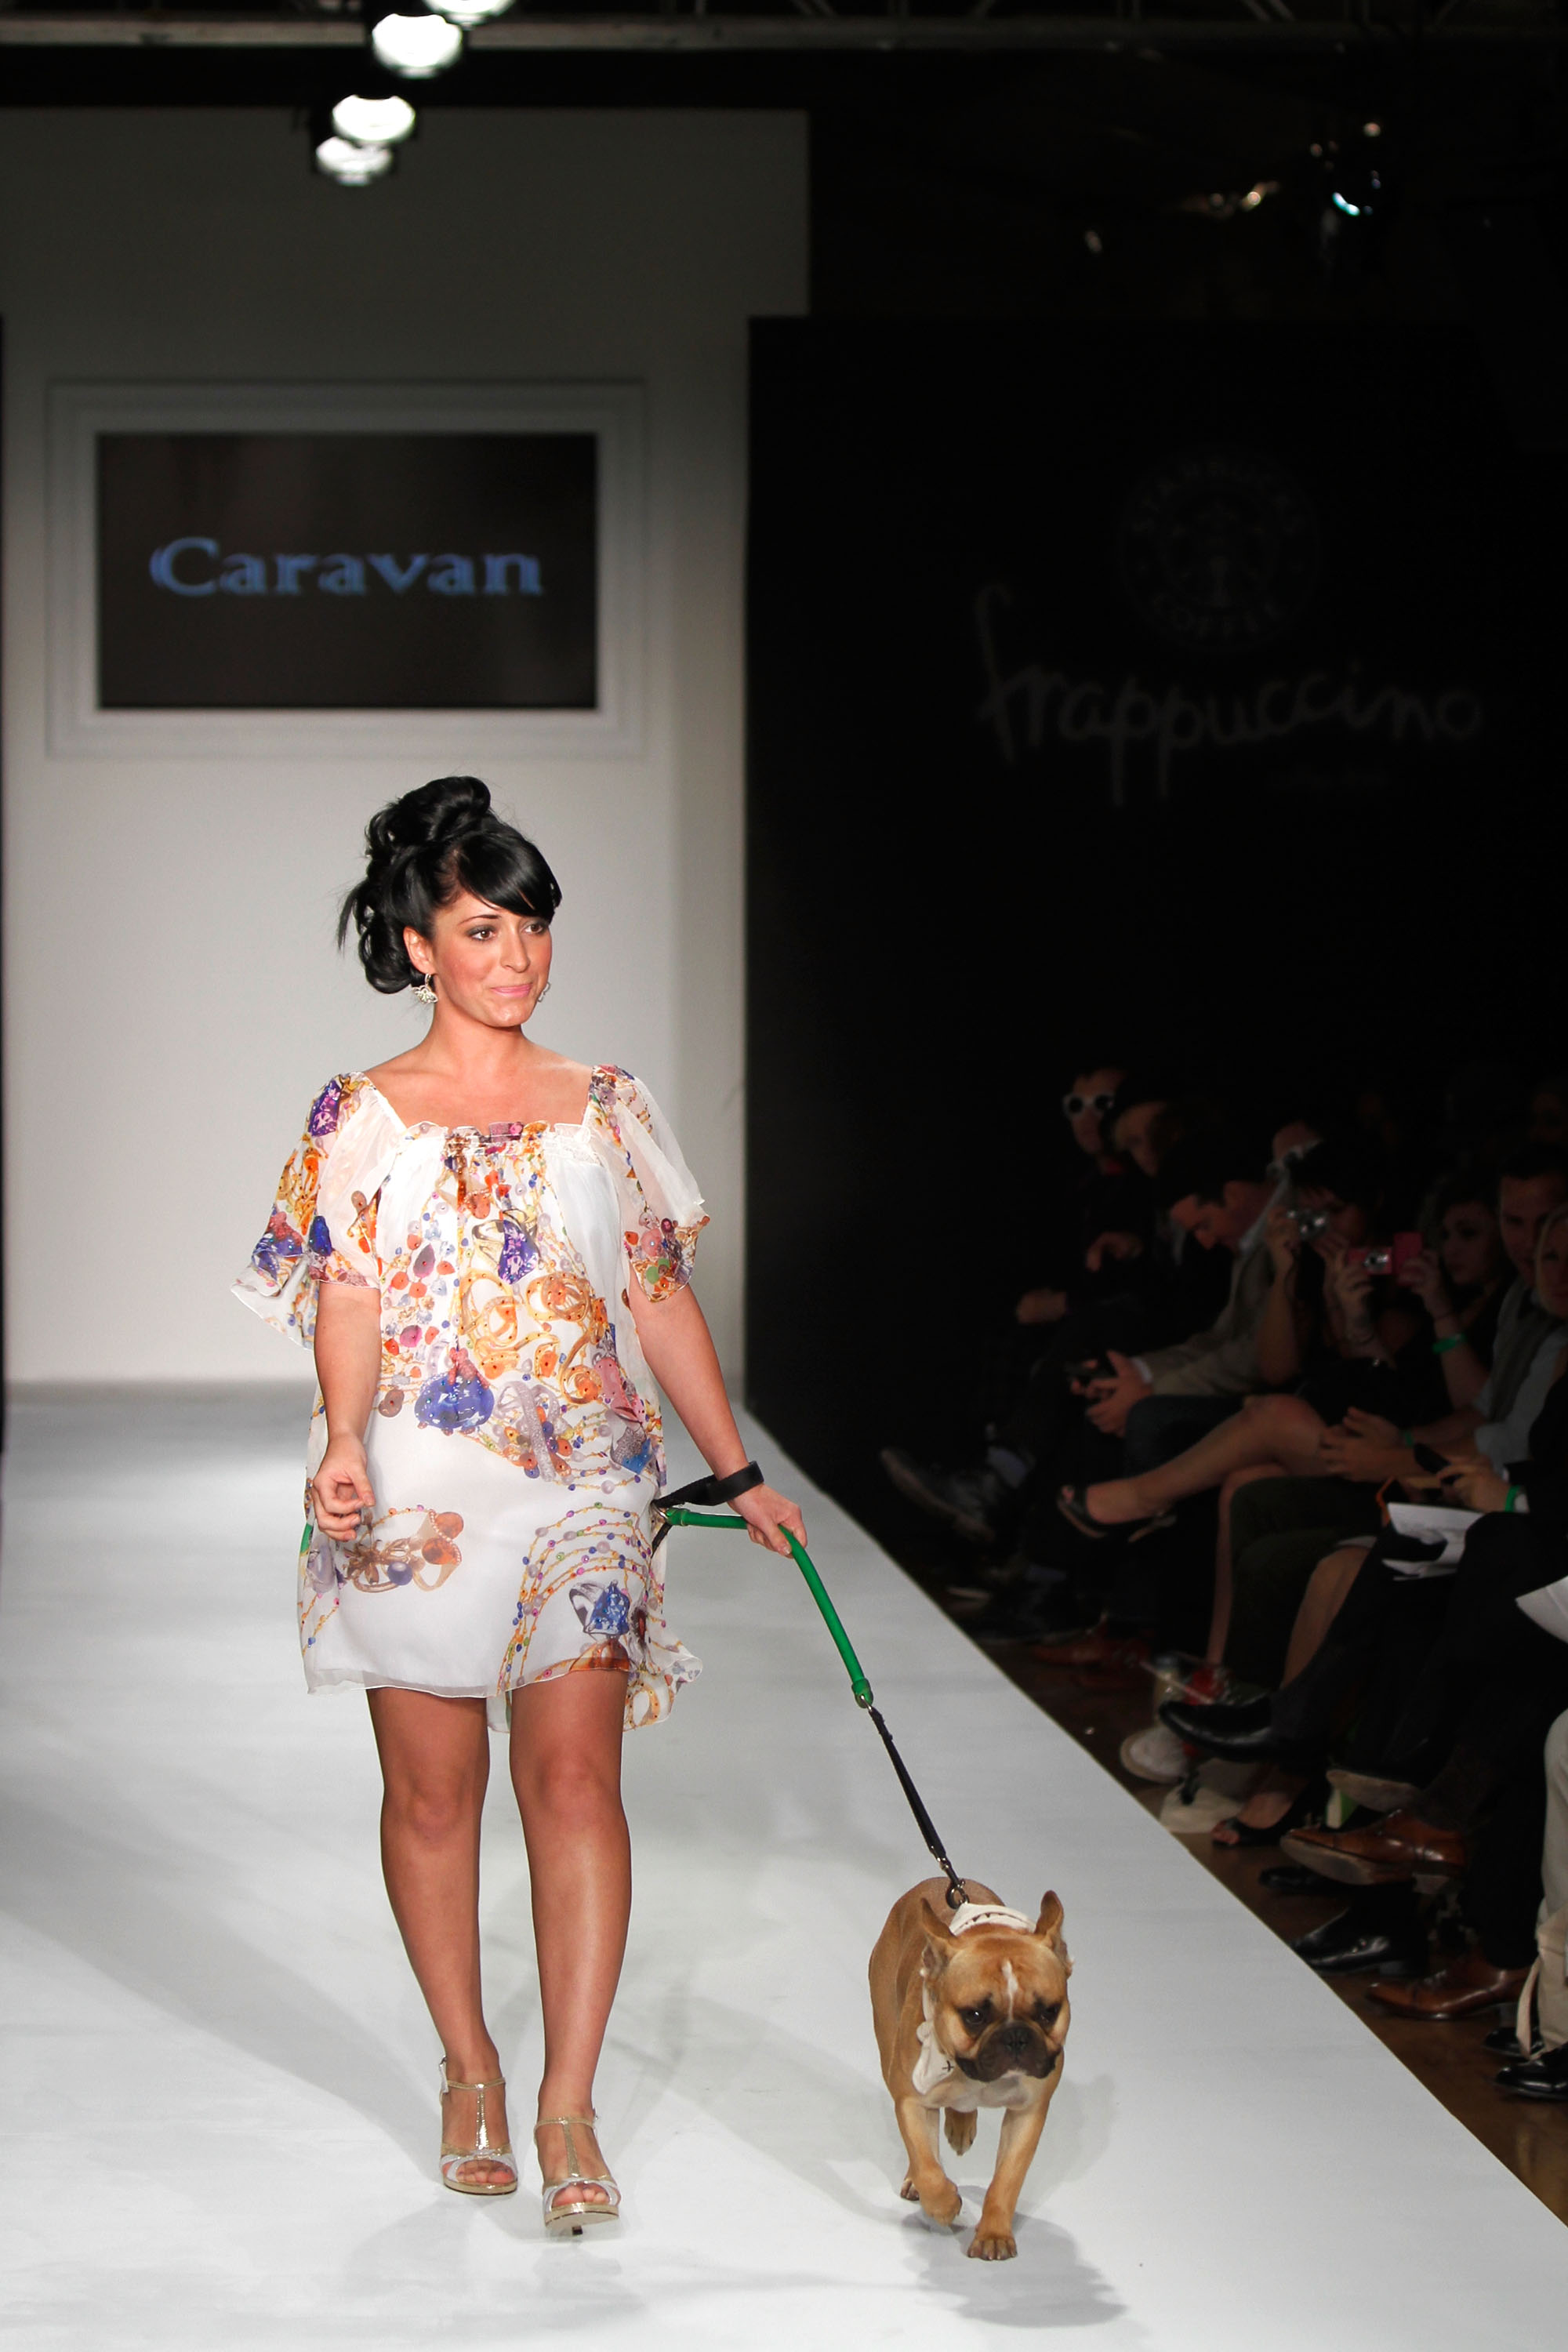 Angelina Pivarnick's Model Behavior at Fashion Week 2010